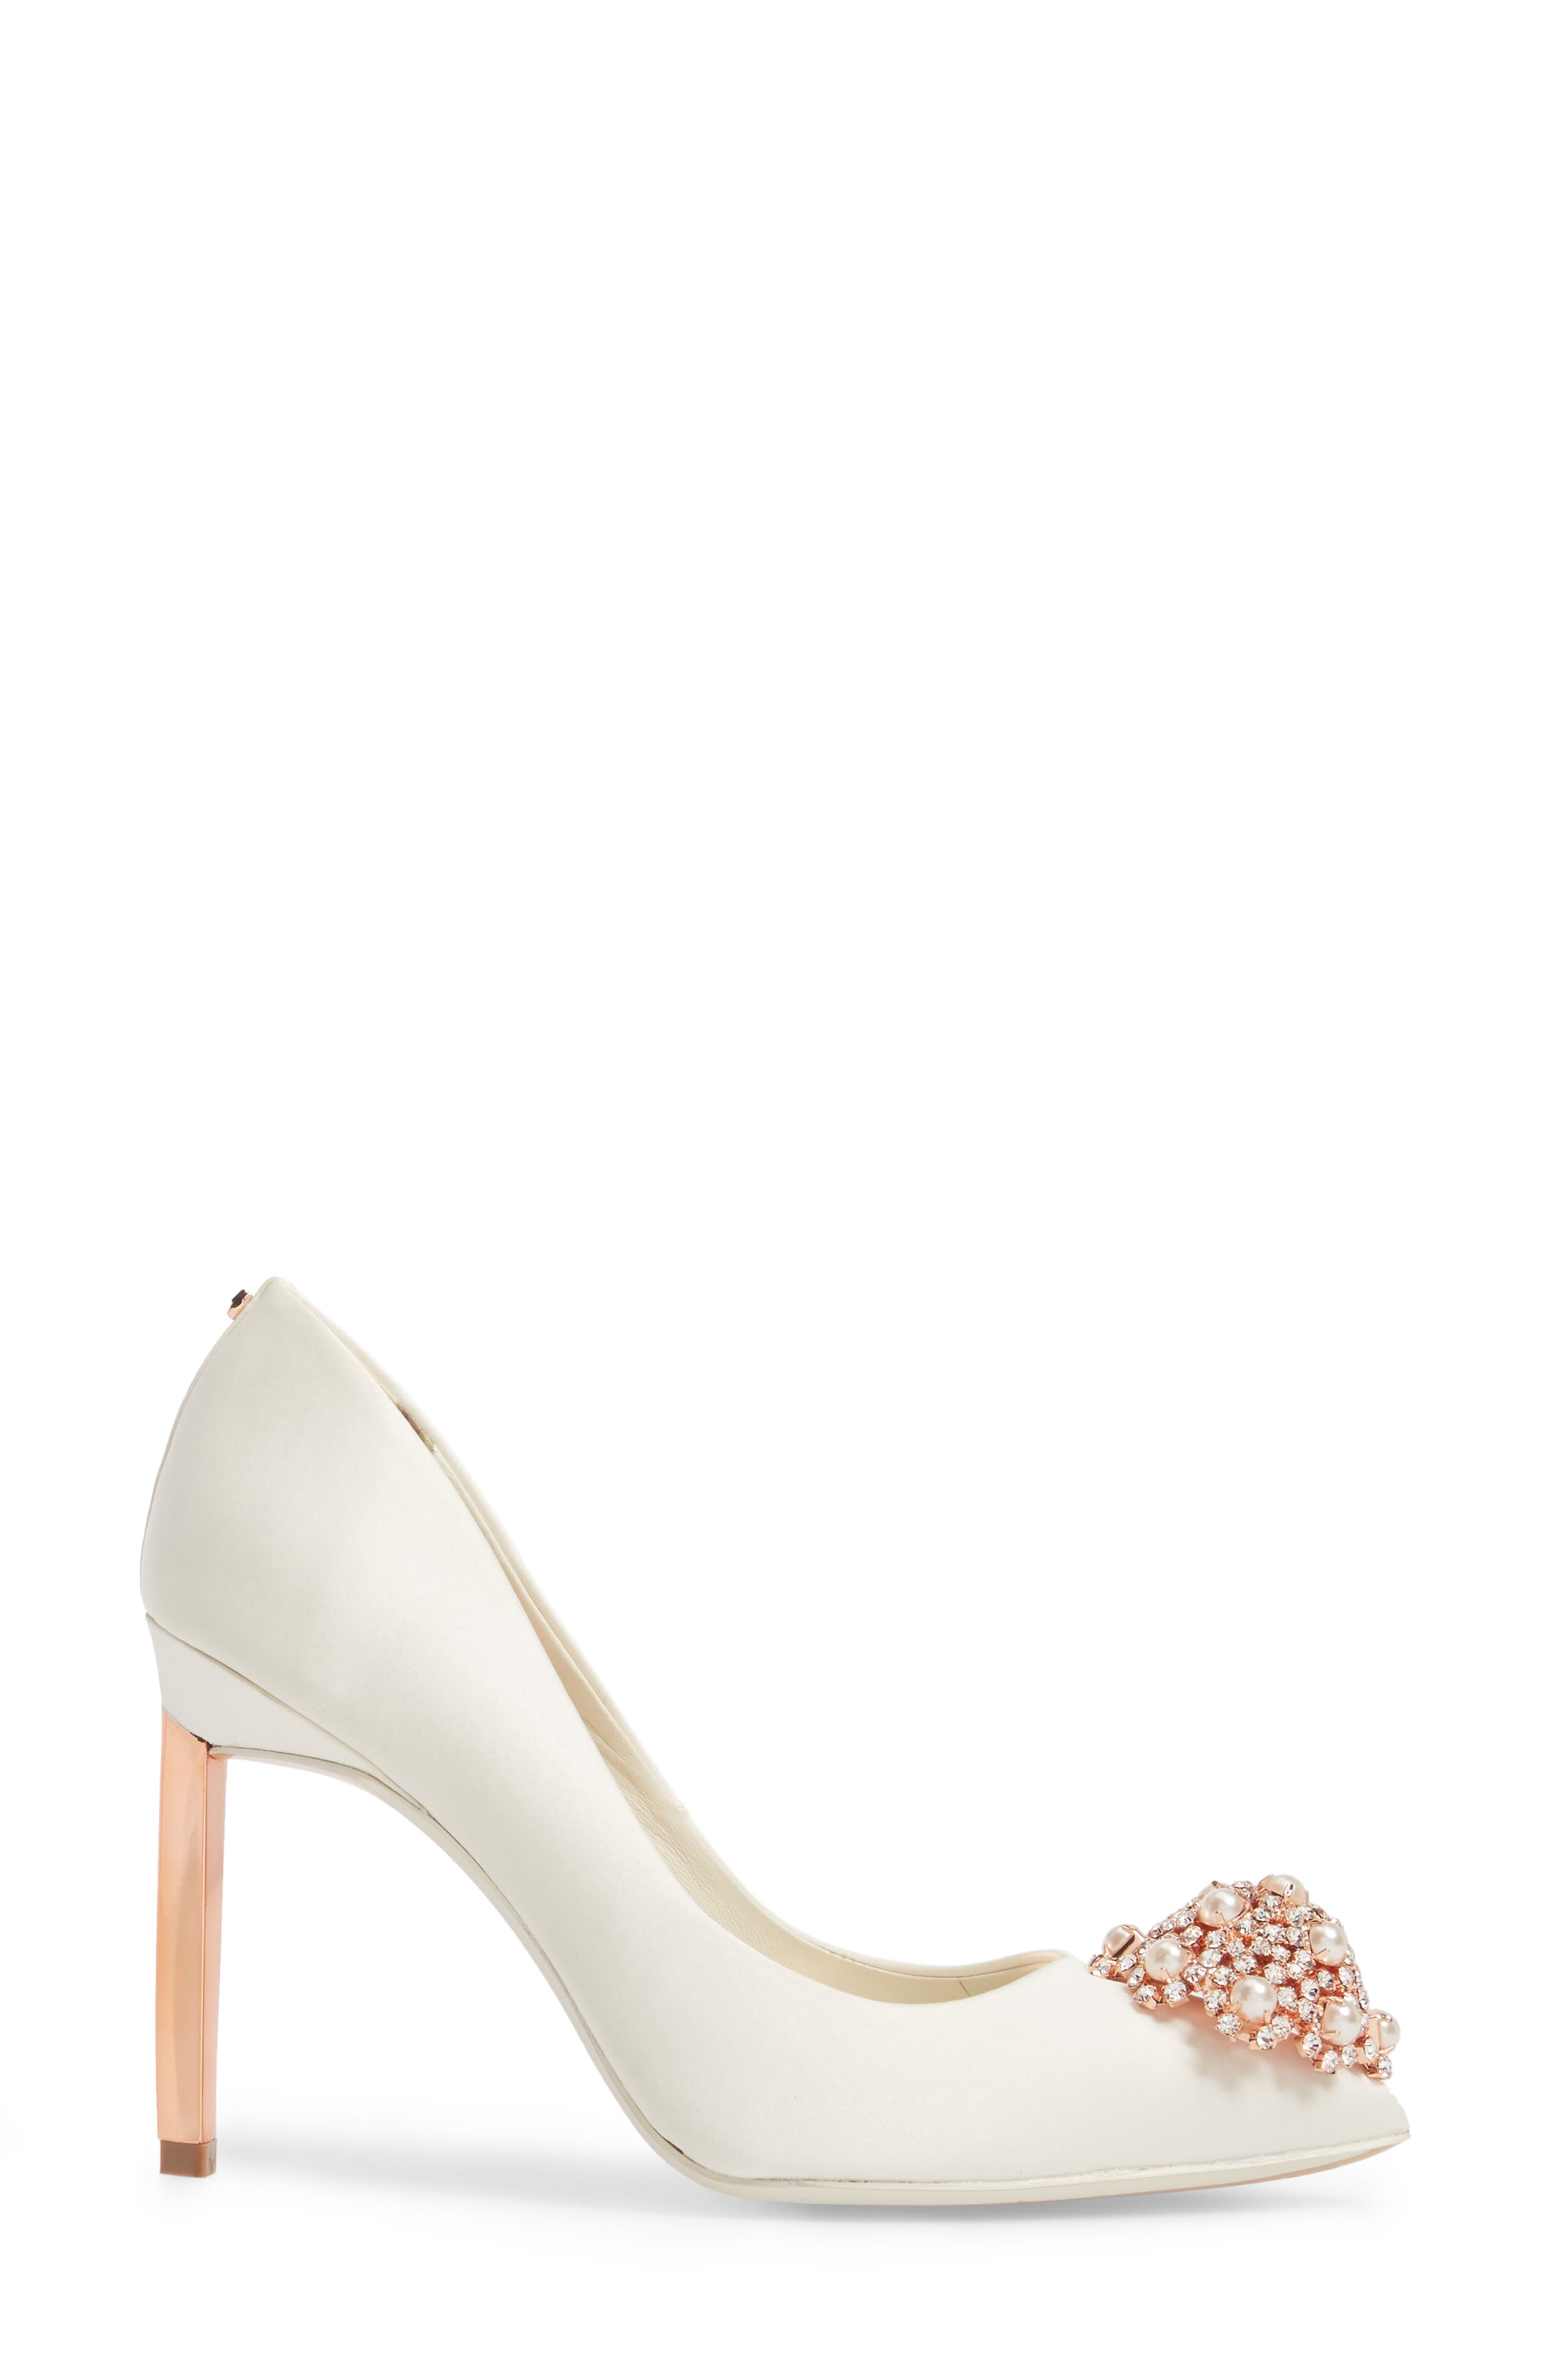 'Peetch' Pointy Toe Pump,                             Alternate thumbnail 3, color,                             Ivory Satin